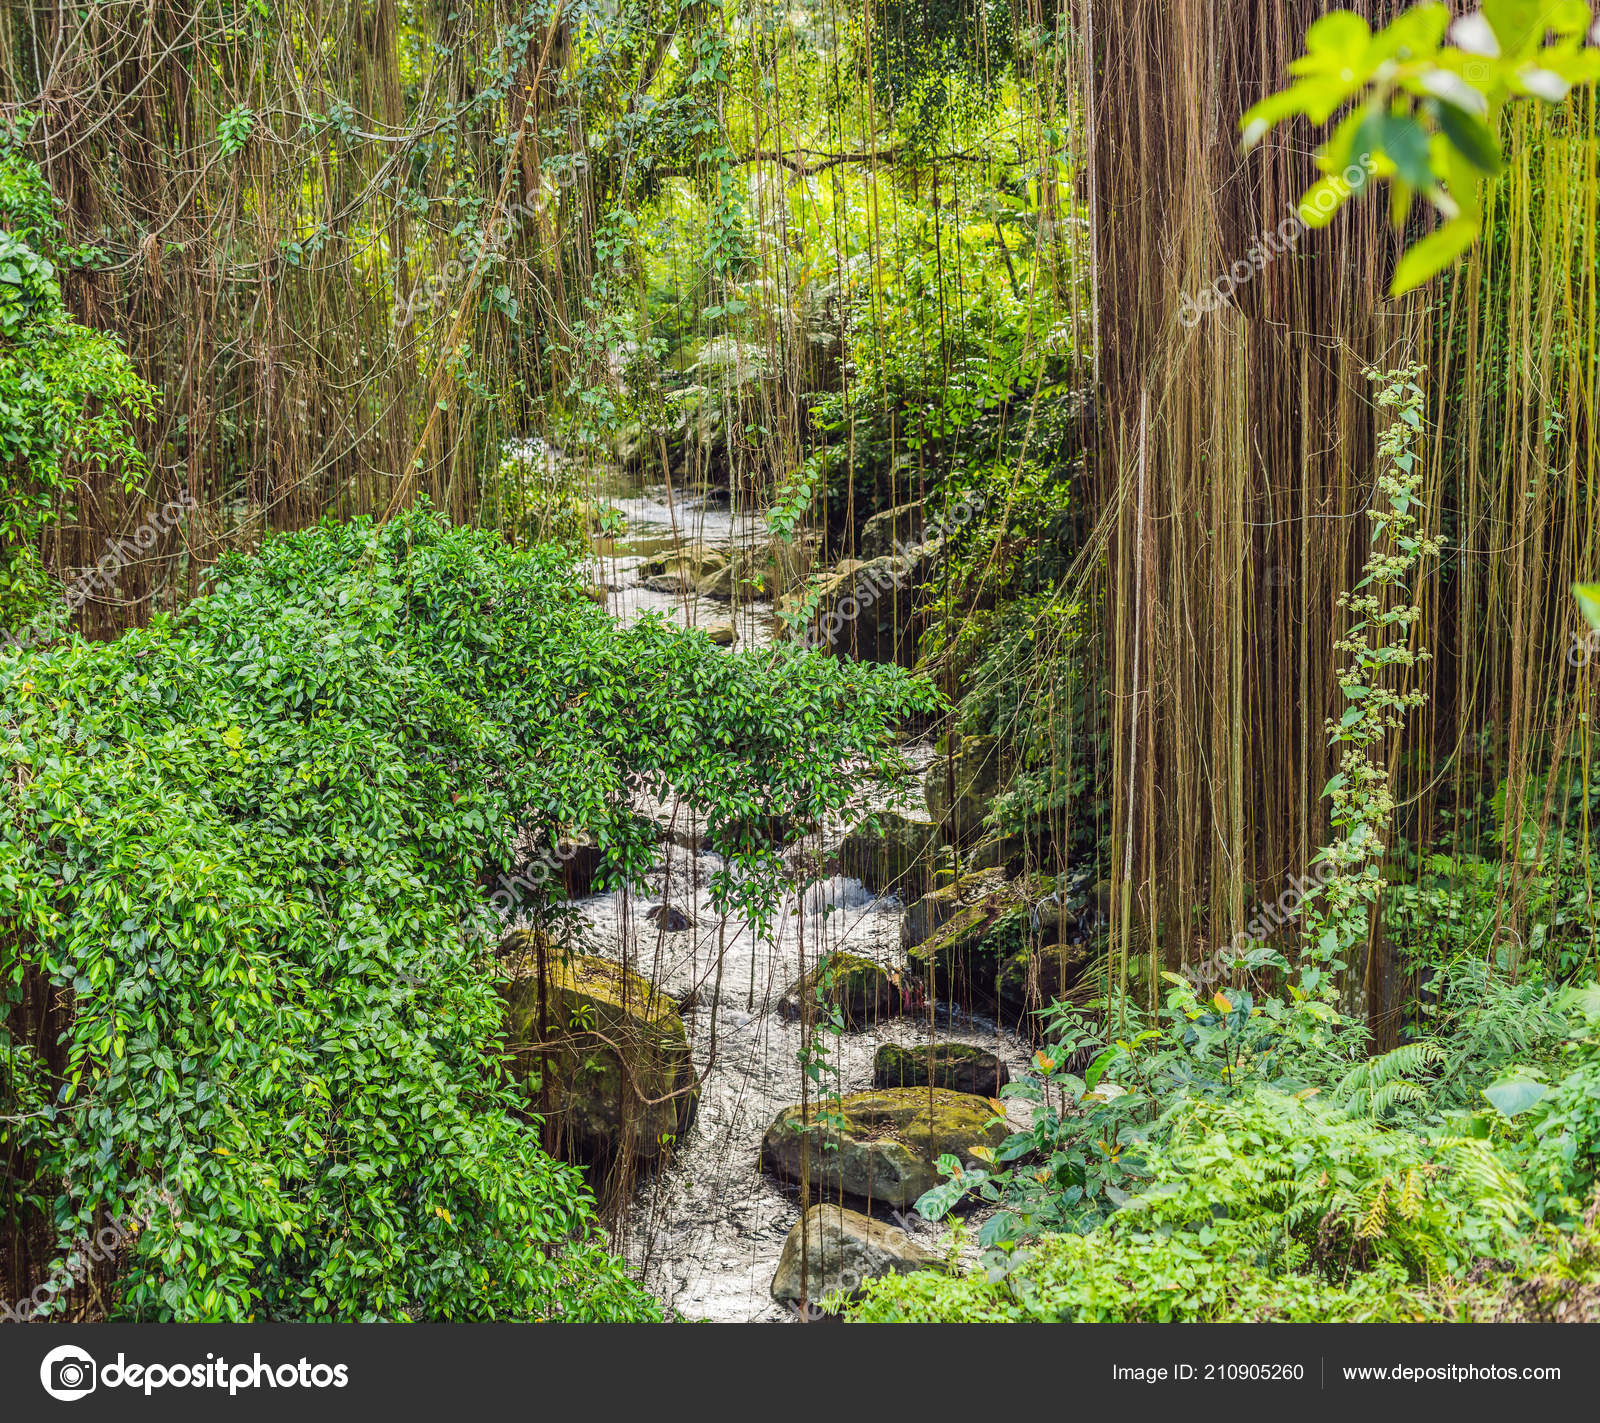 A guayacan tree with yellow flowers (stock footage) a nature background of a rainforest: Climbing Plants Trees Sunny Tropical Rain Forest River Background Stock Photo By C Galitskaya 210905260